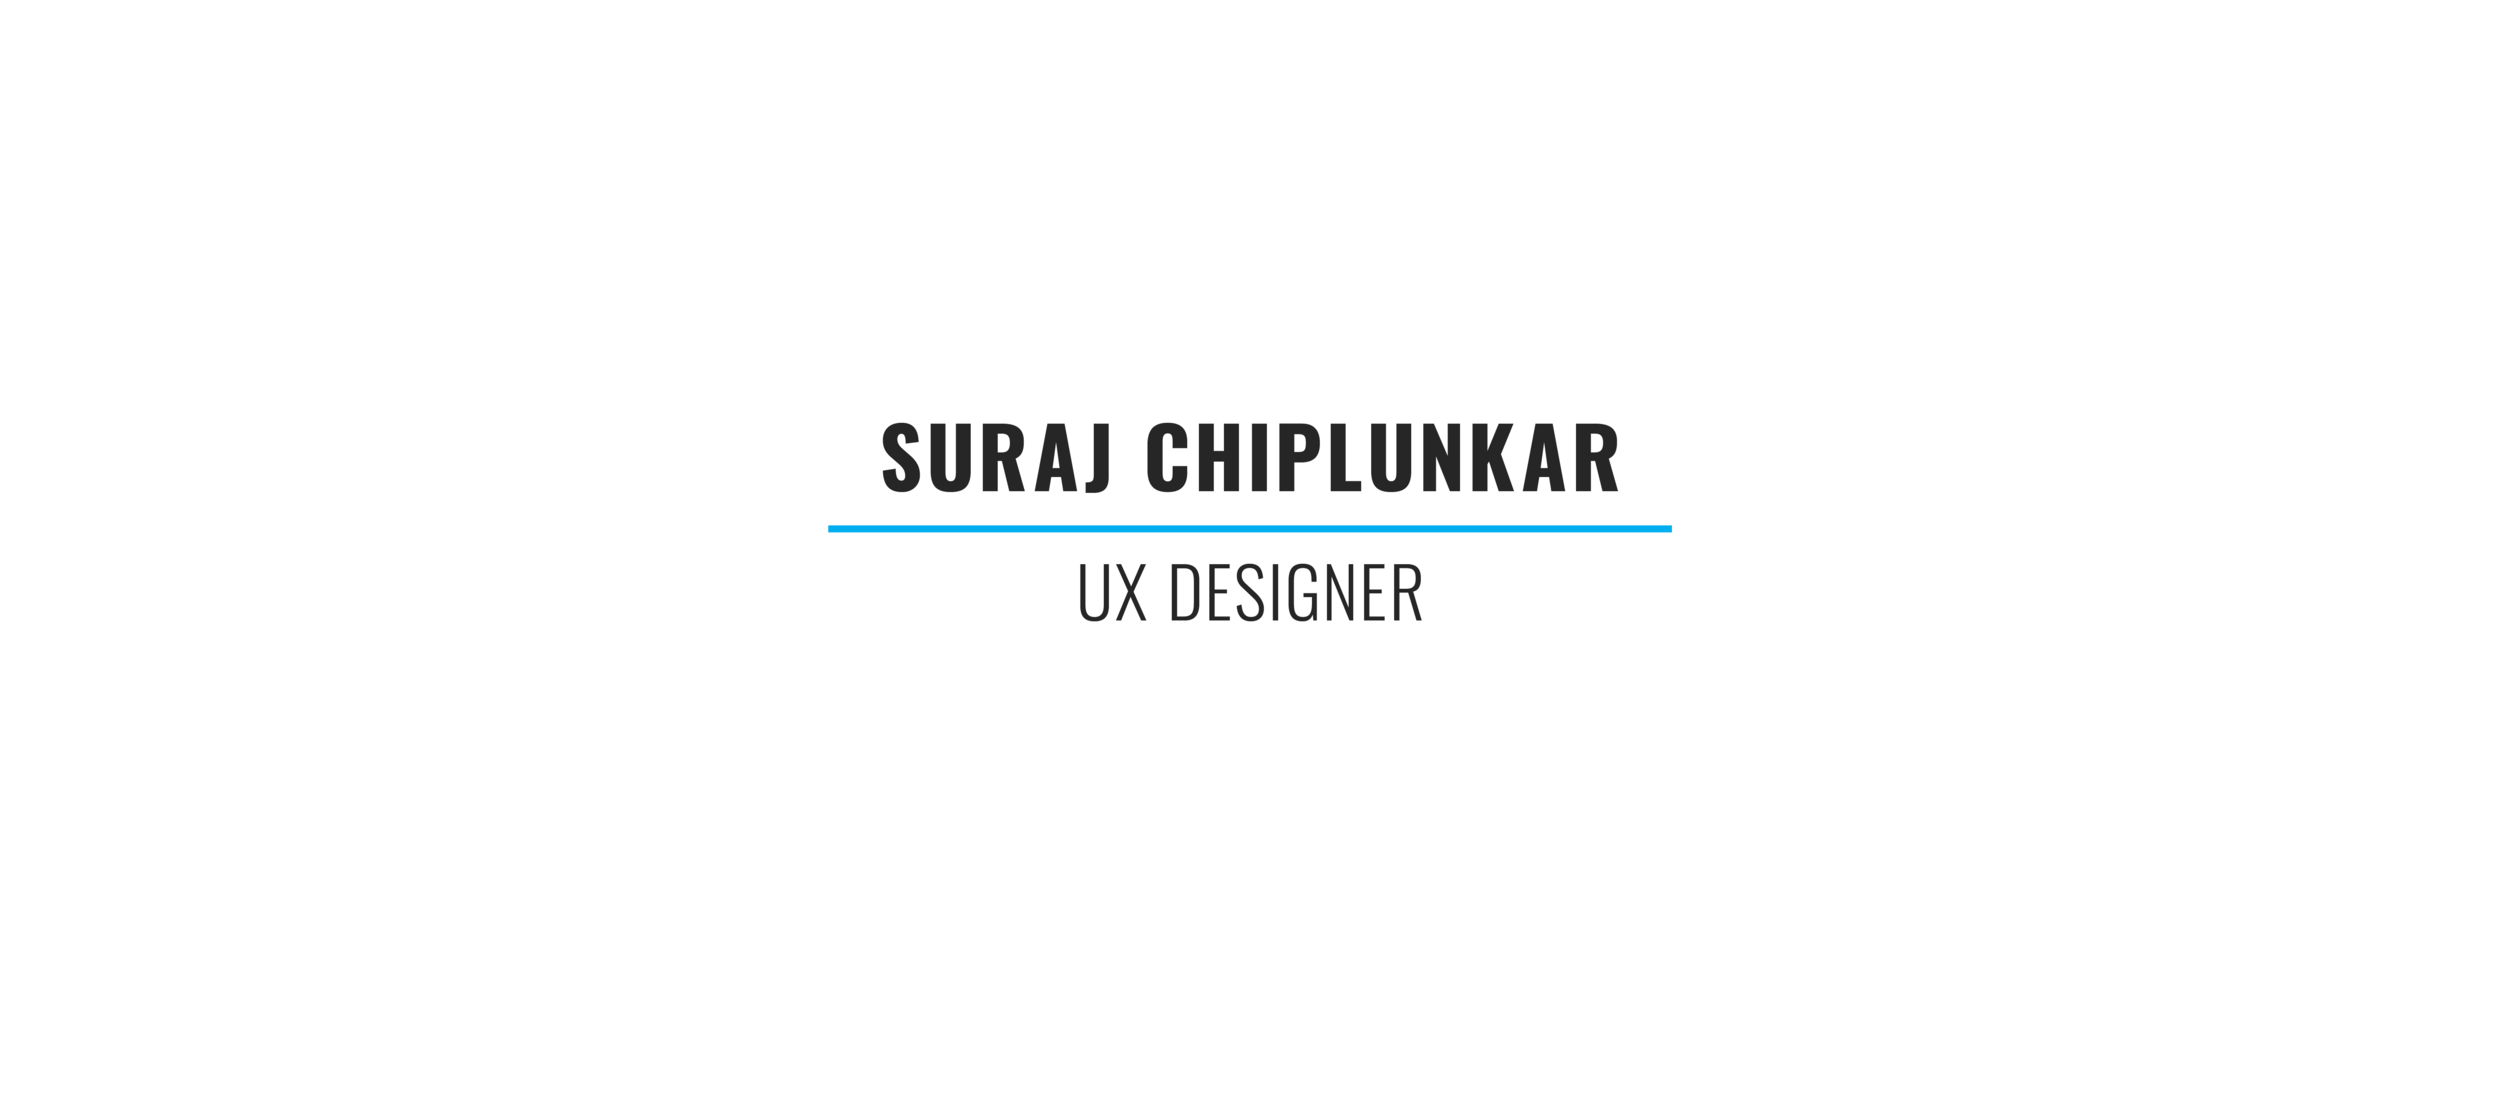 This image contains my name and my interest in UX Design opportunities.